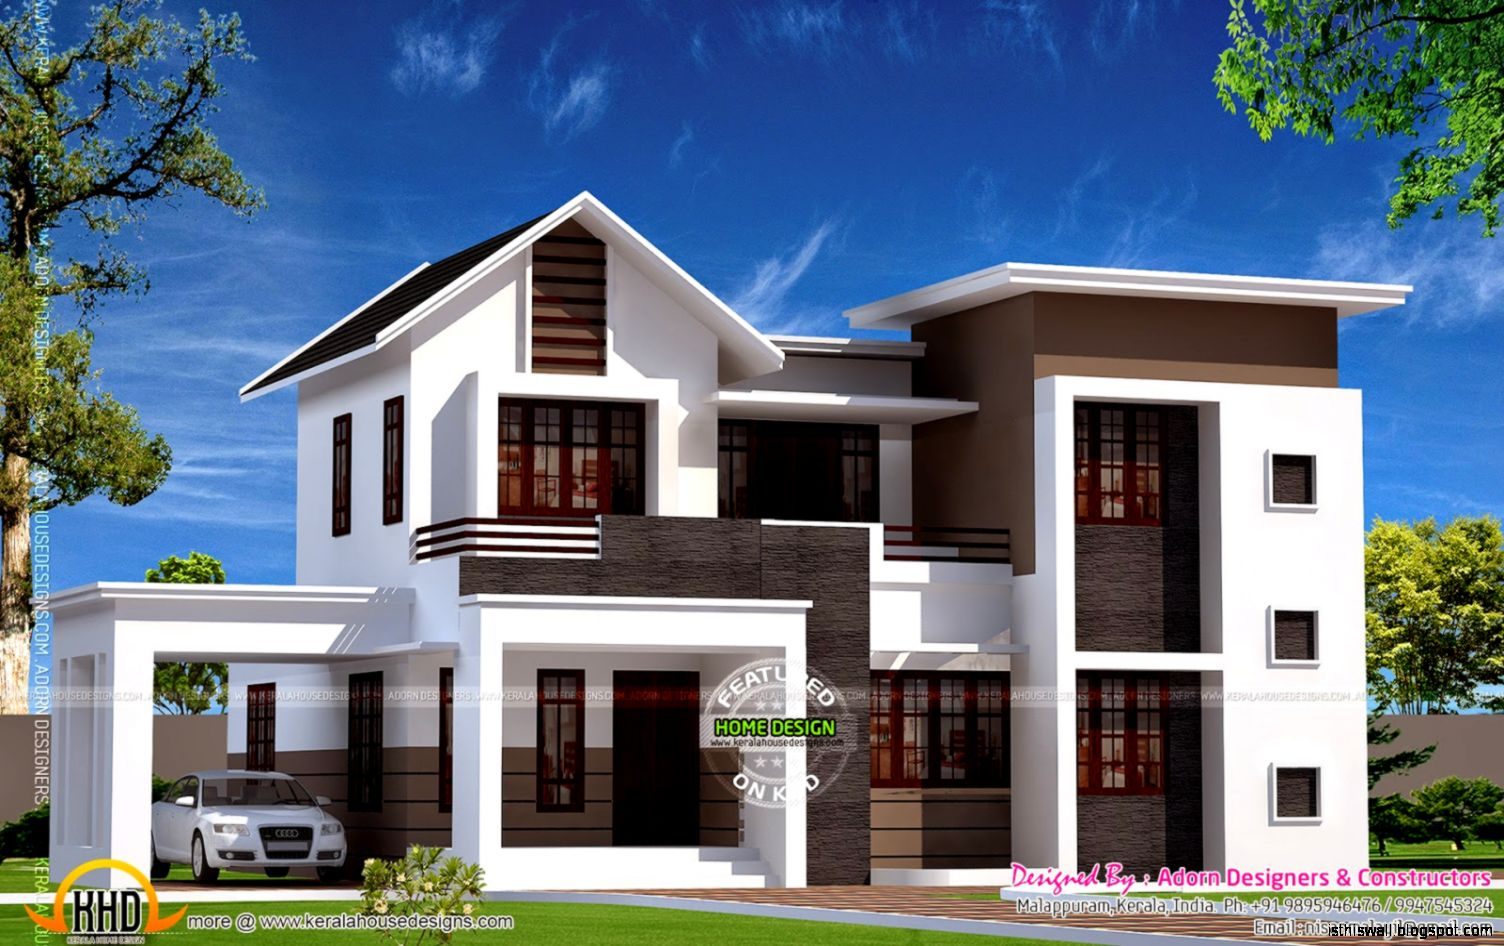 Home houses design this wallpapers Small indian home designs photos